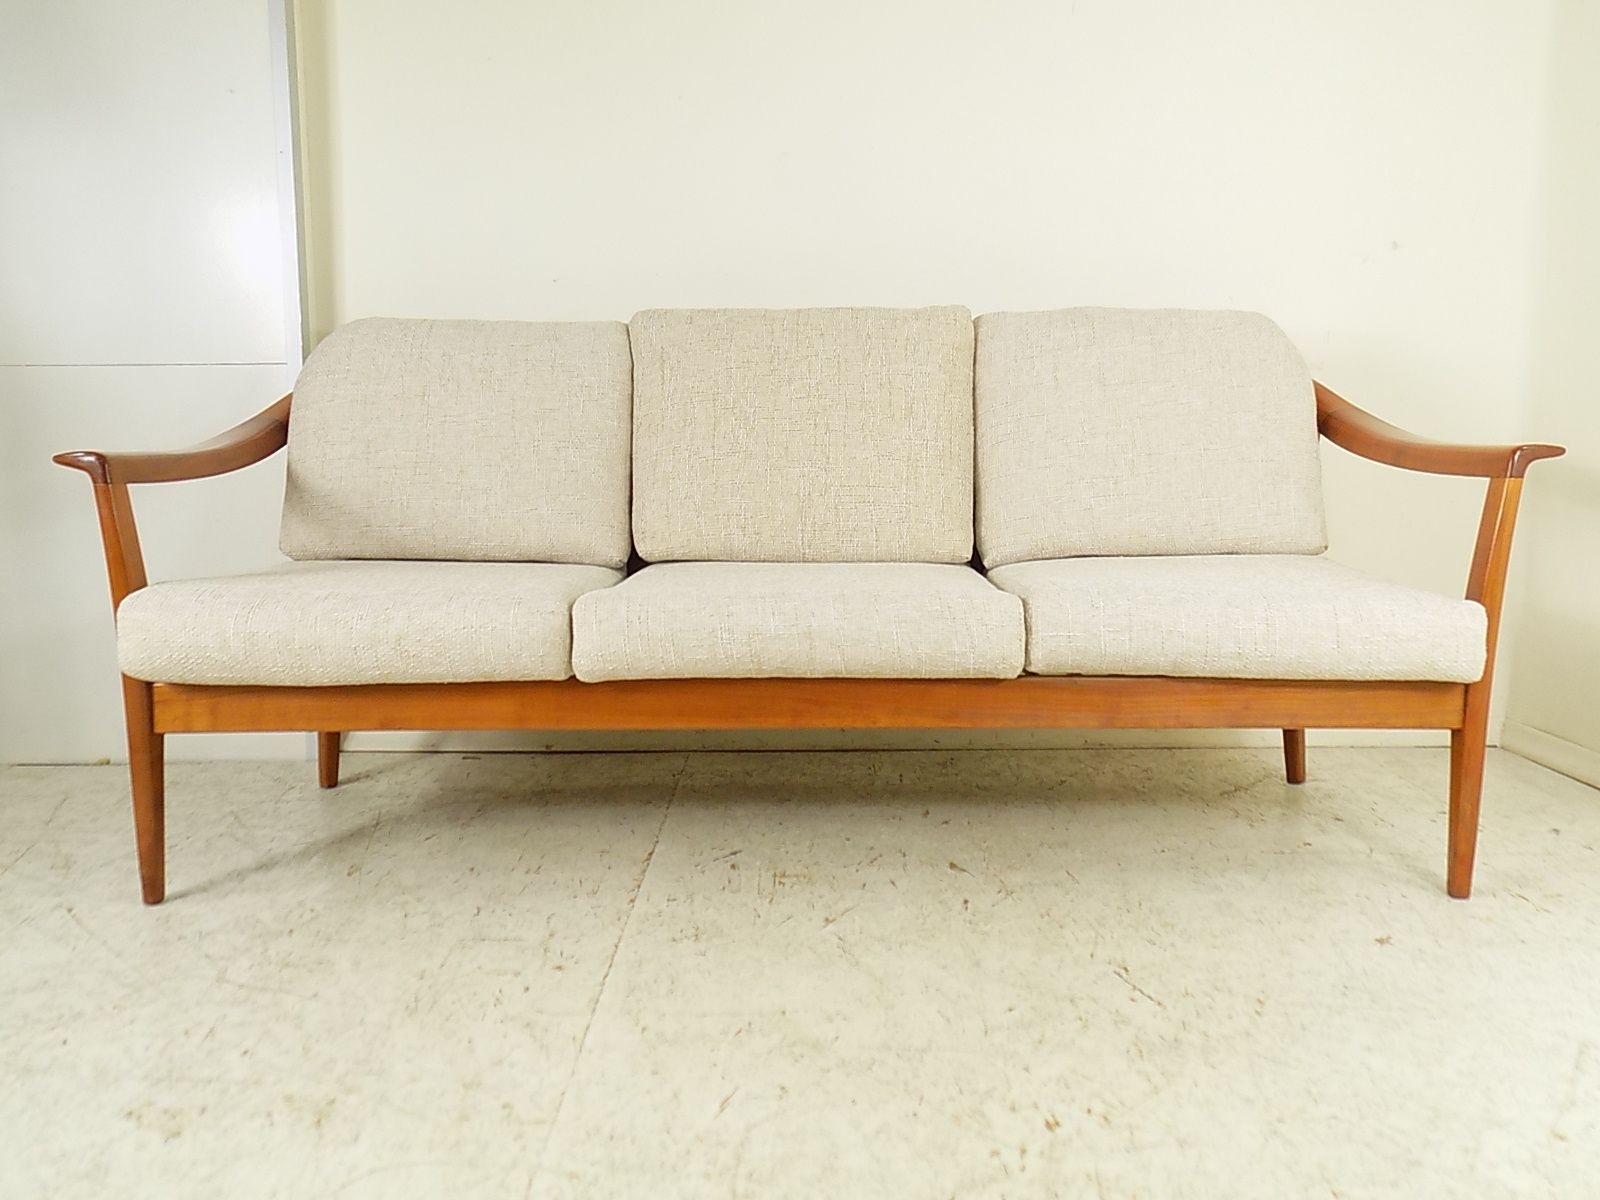 vintage cherry 3 seater sofa from wilhelm knoll 1960s for sale at pamono. Black Bedroom Furniture Sets. Home Design Ideas